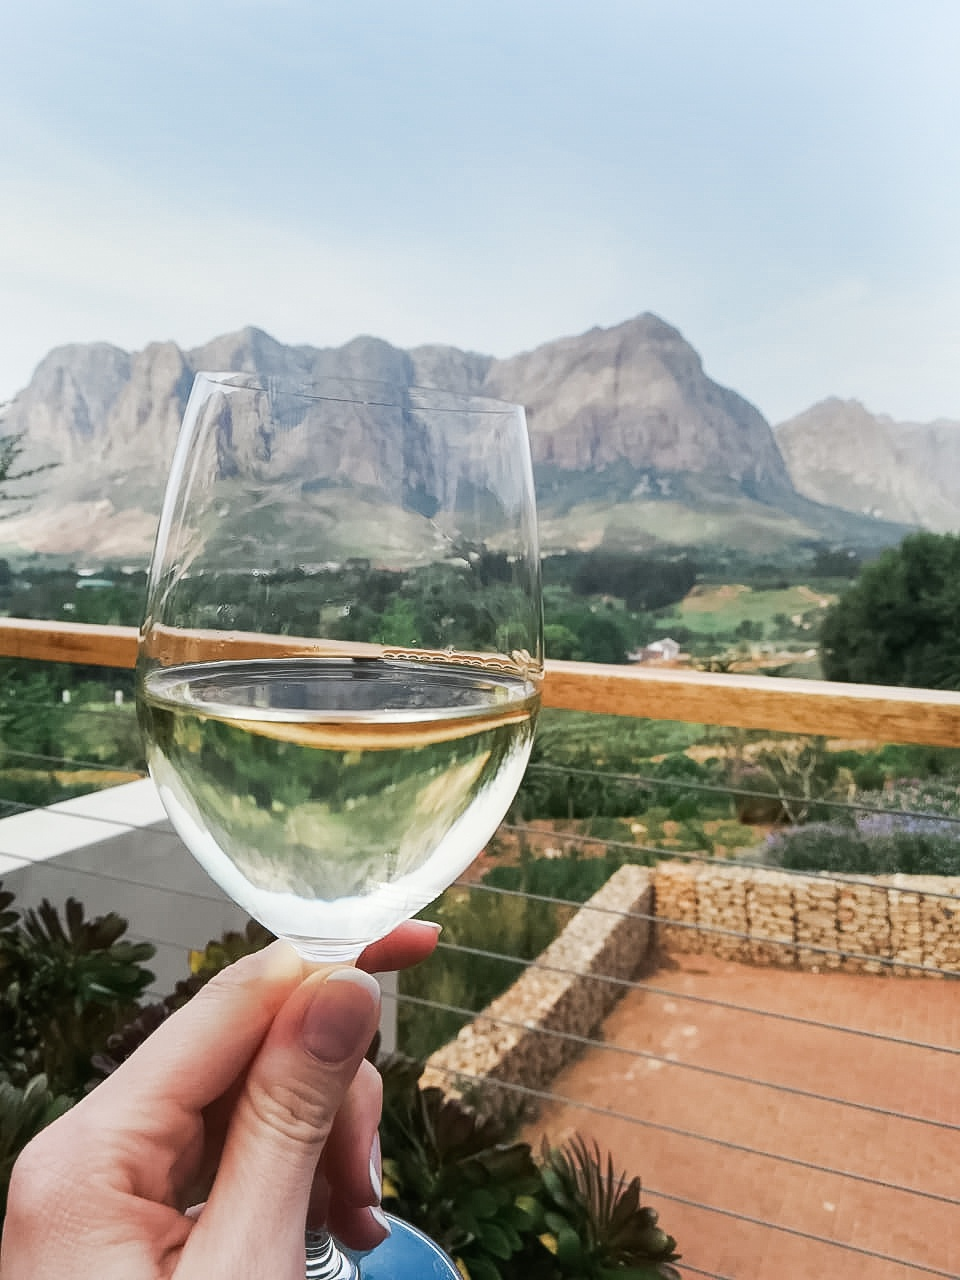 Glass of Chardonnay Limoenkloof wine being drunk at De Zeven Guest Lodge in Capewinelands